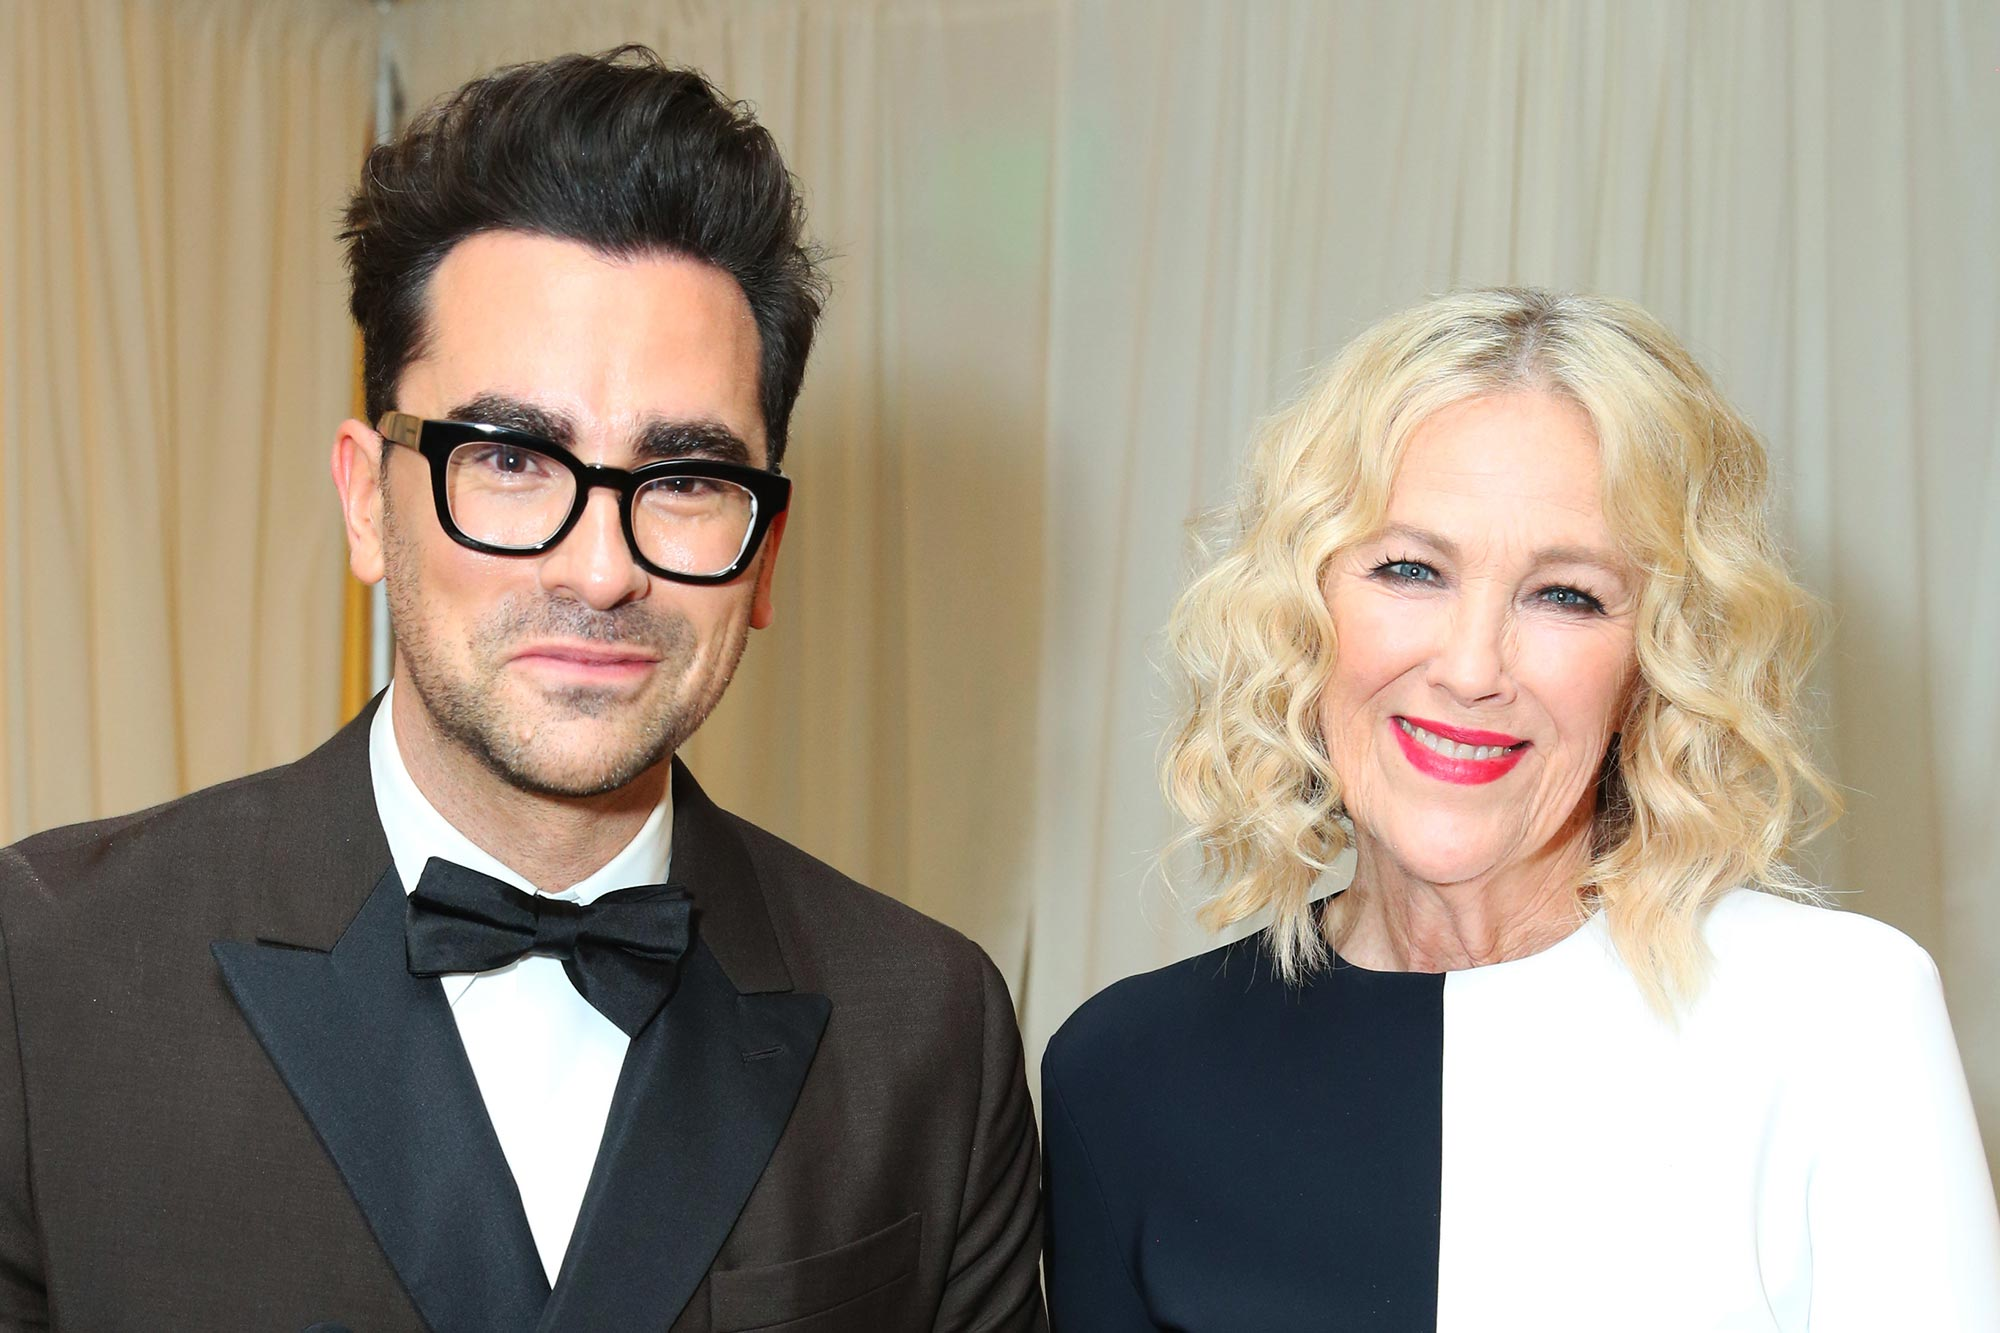 Daniel Levy (L) and Catherine O'Hara